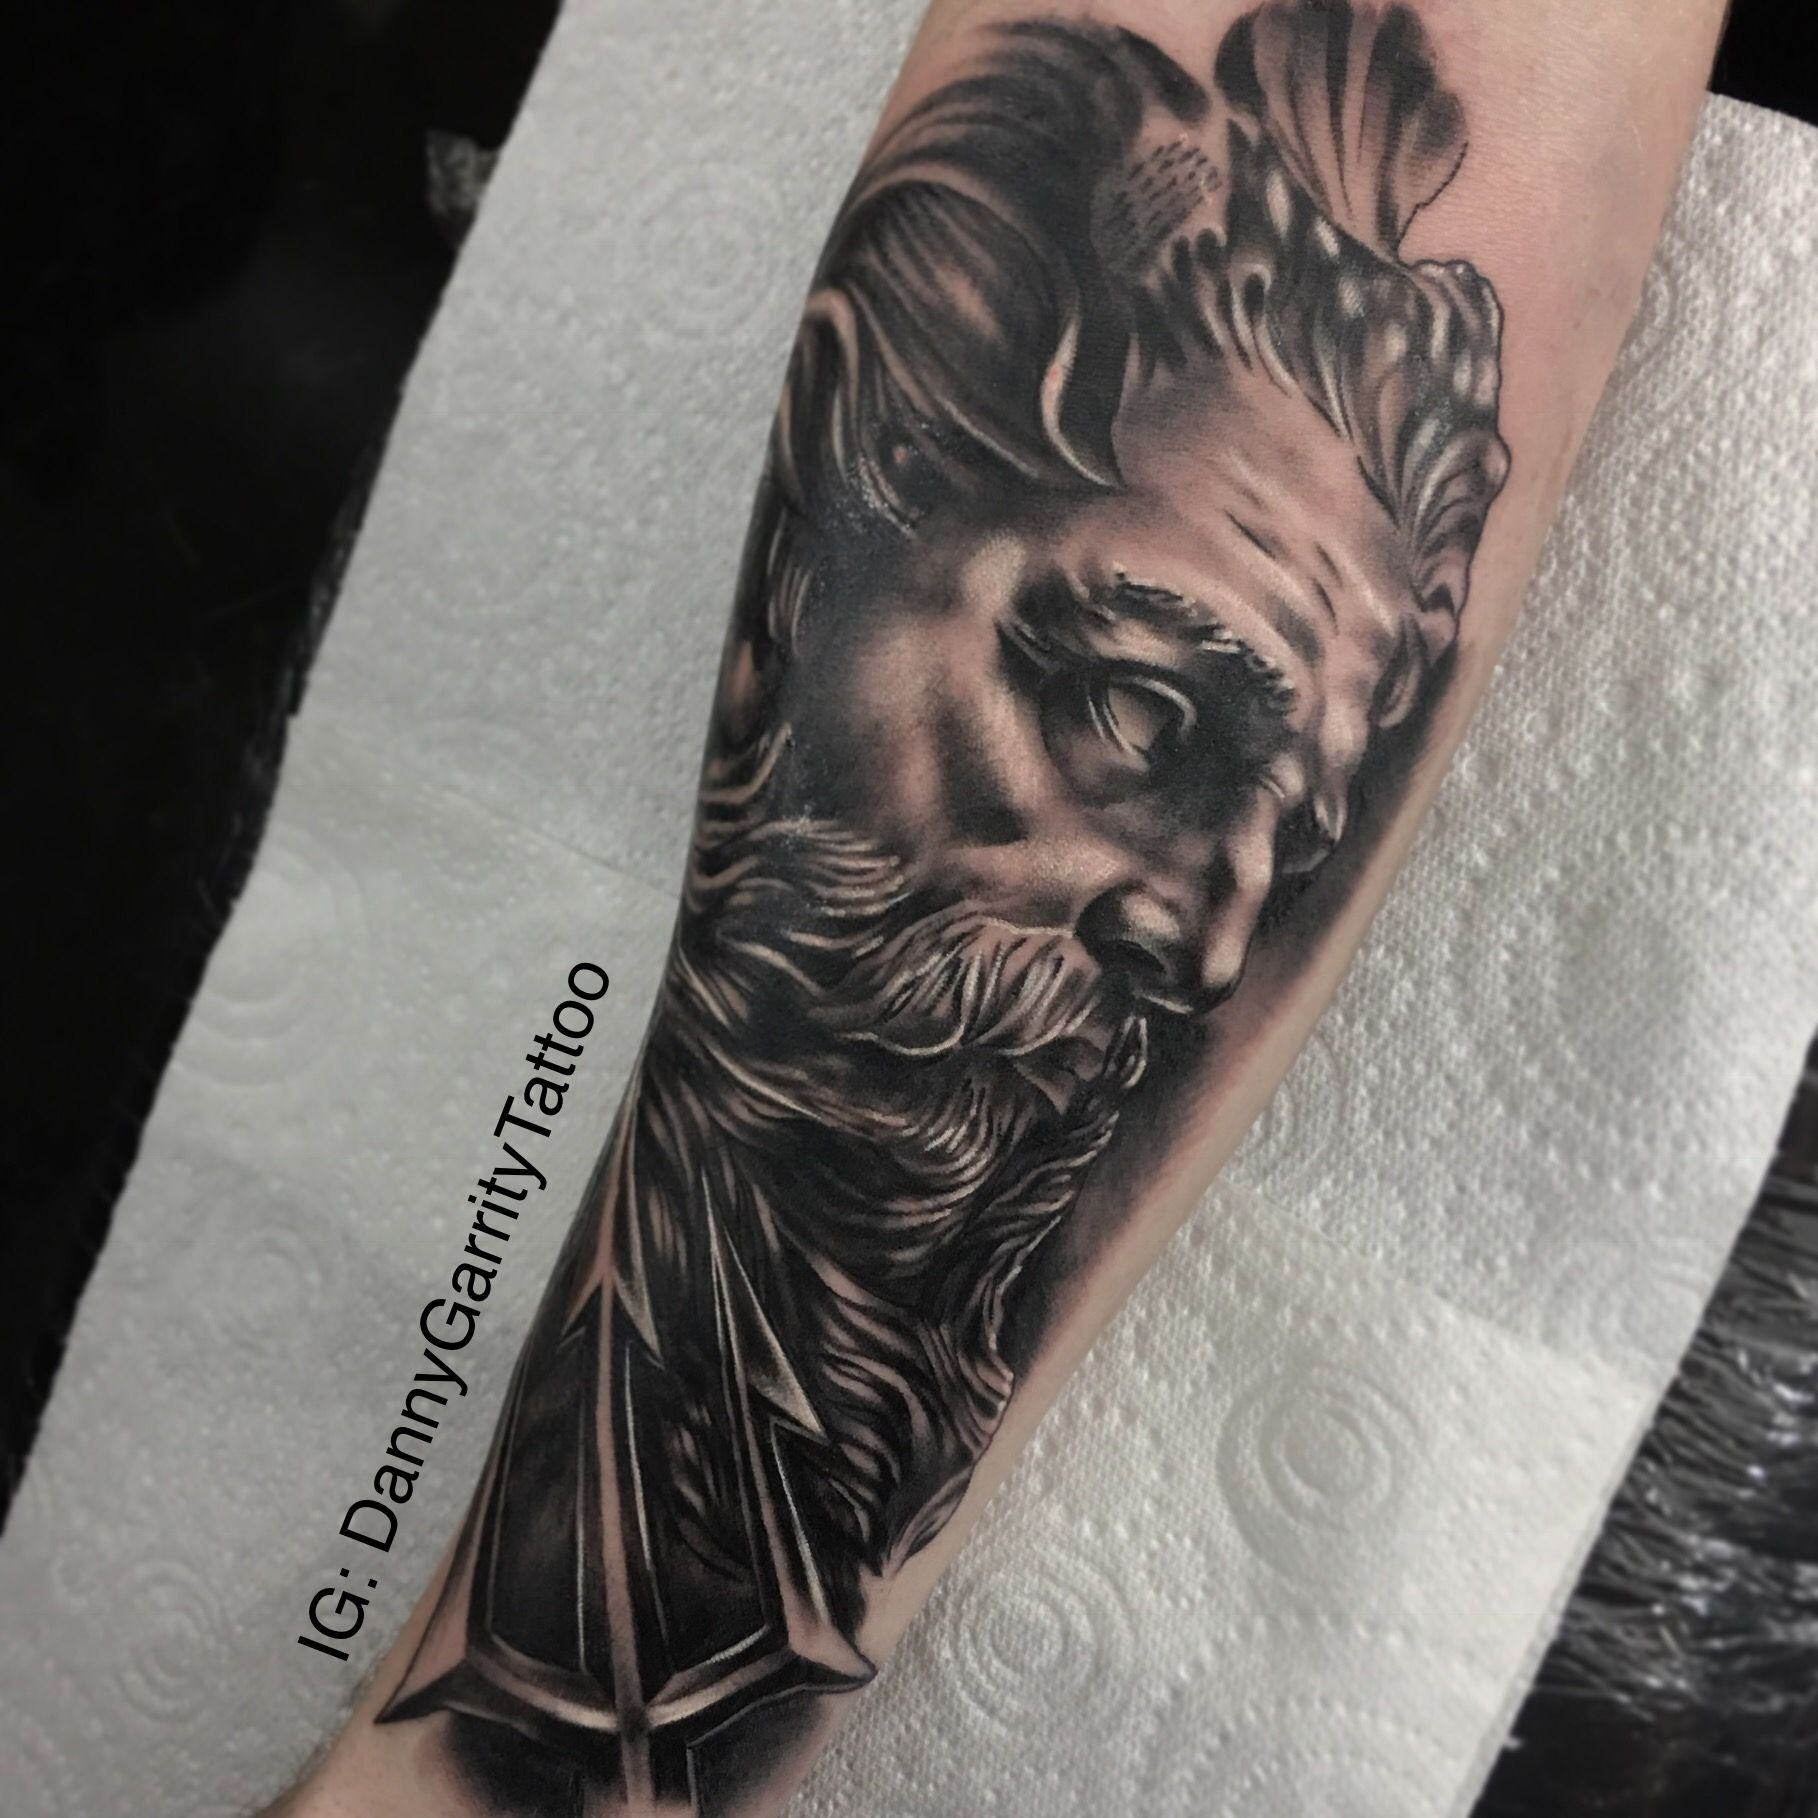 Black And Grey Greek Mythology Zeus Tattoo Sleeve Zeus Tattoo Sleeve Tattoos Greek Tattoos